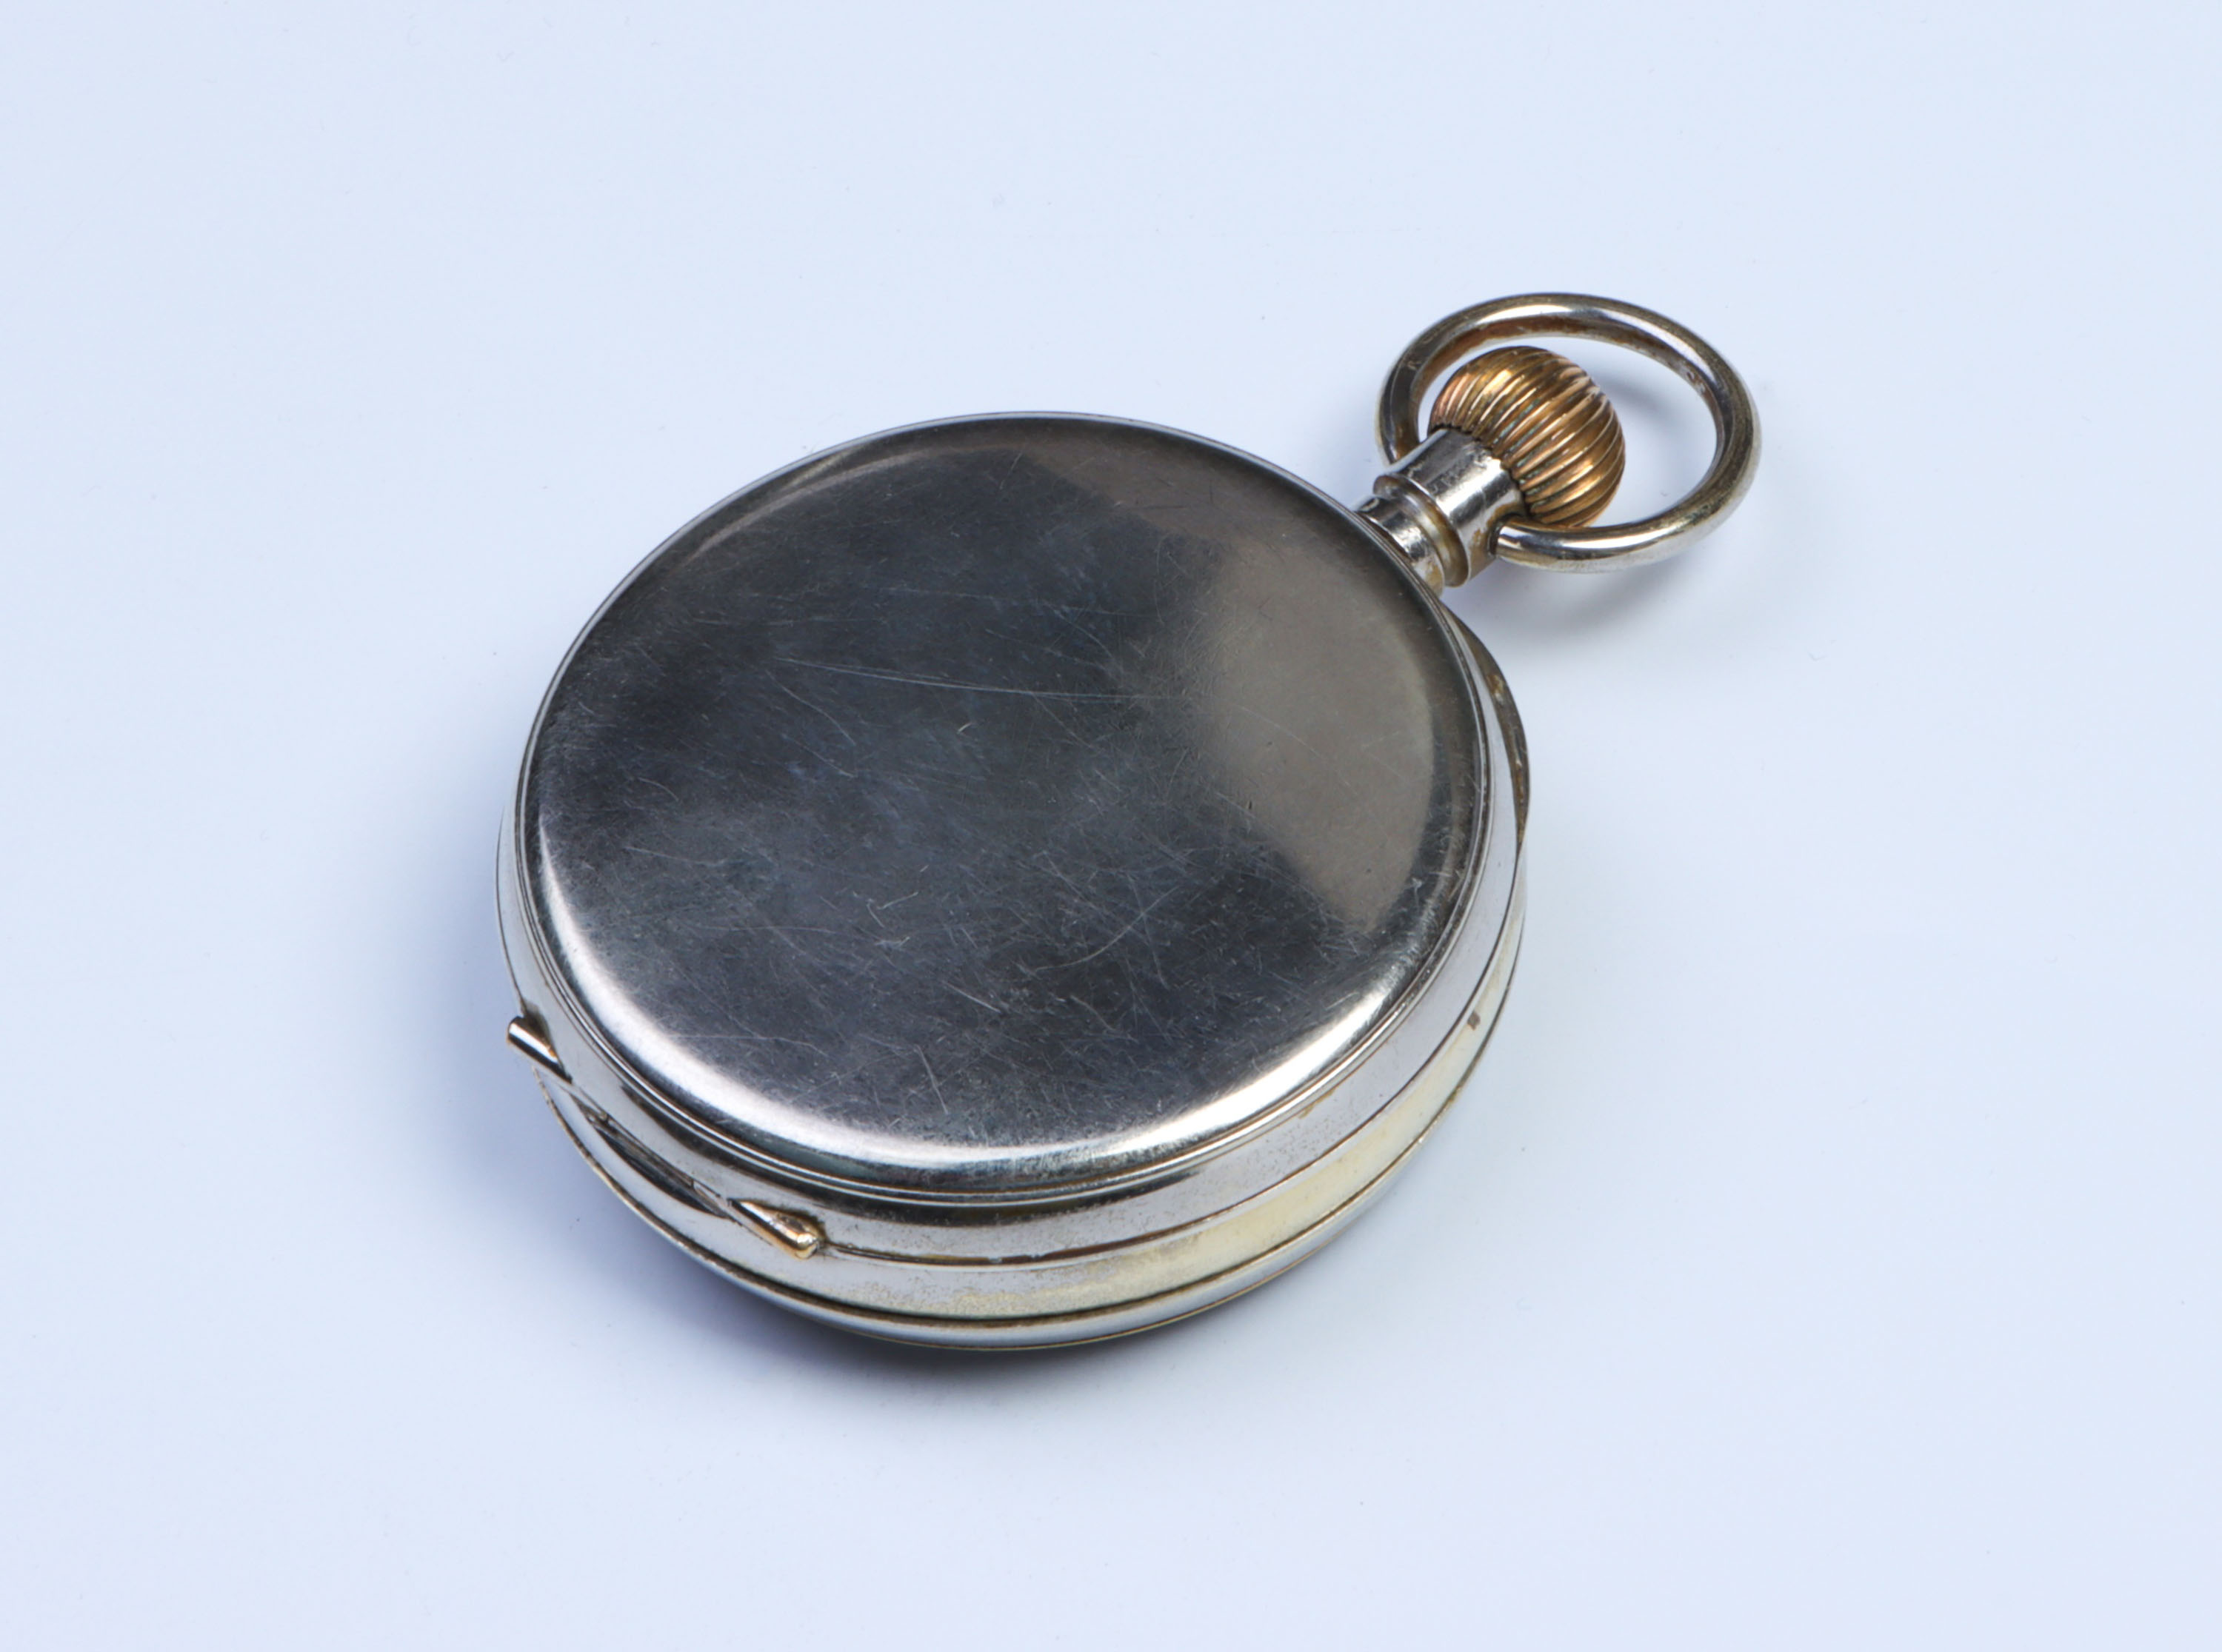 A Goliath Pocket Watch, - Image 4 of 4